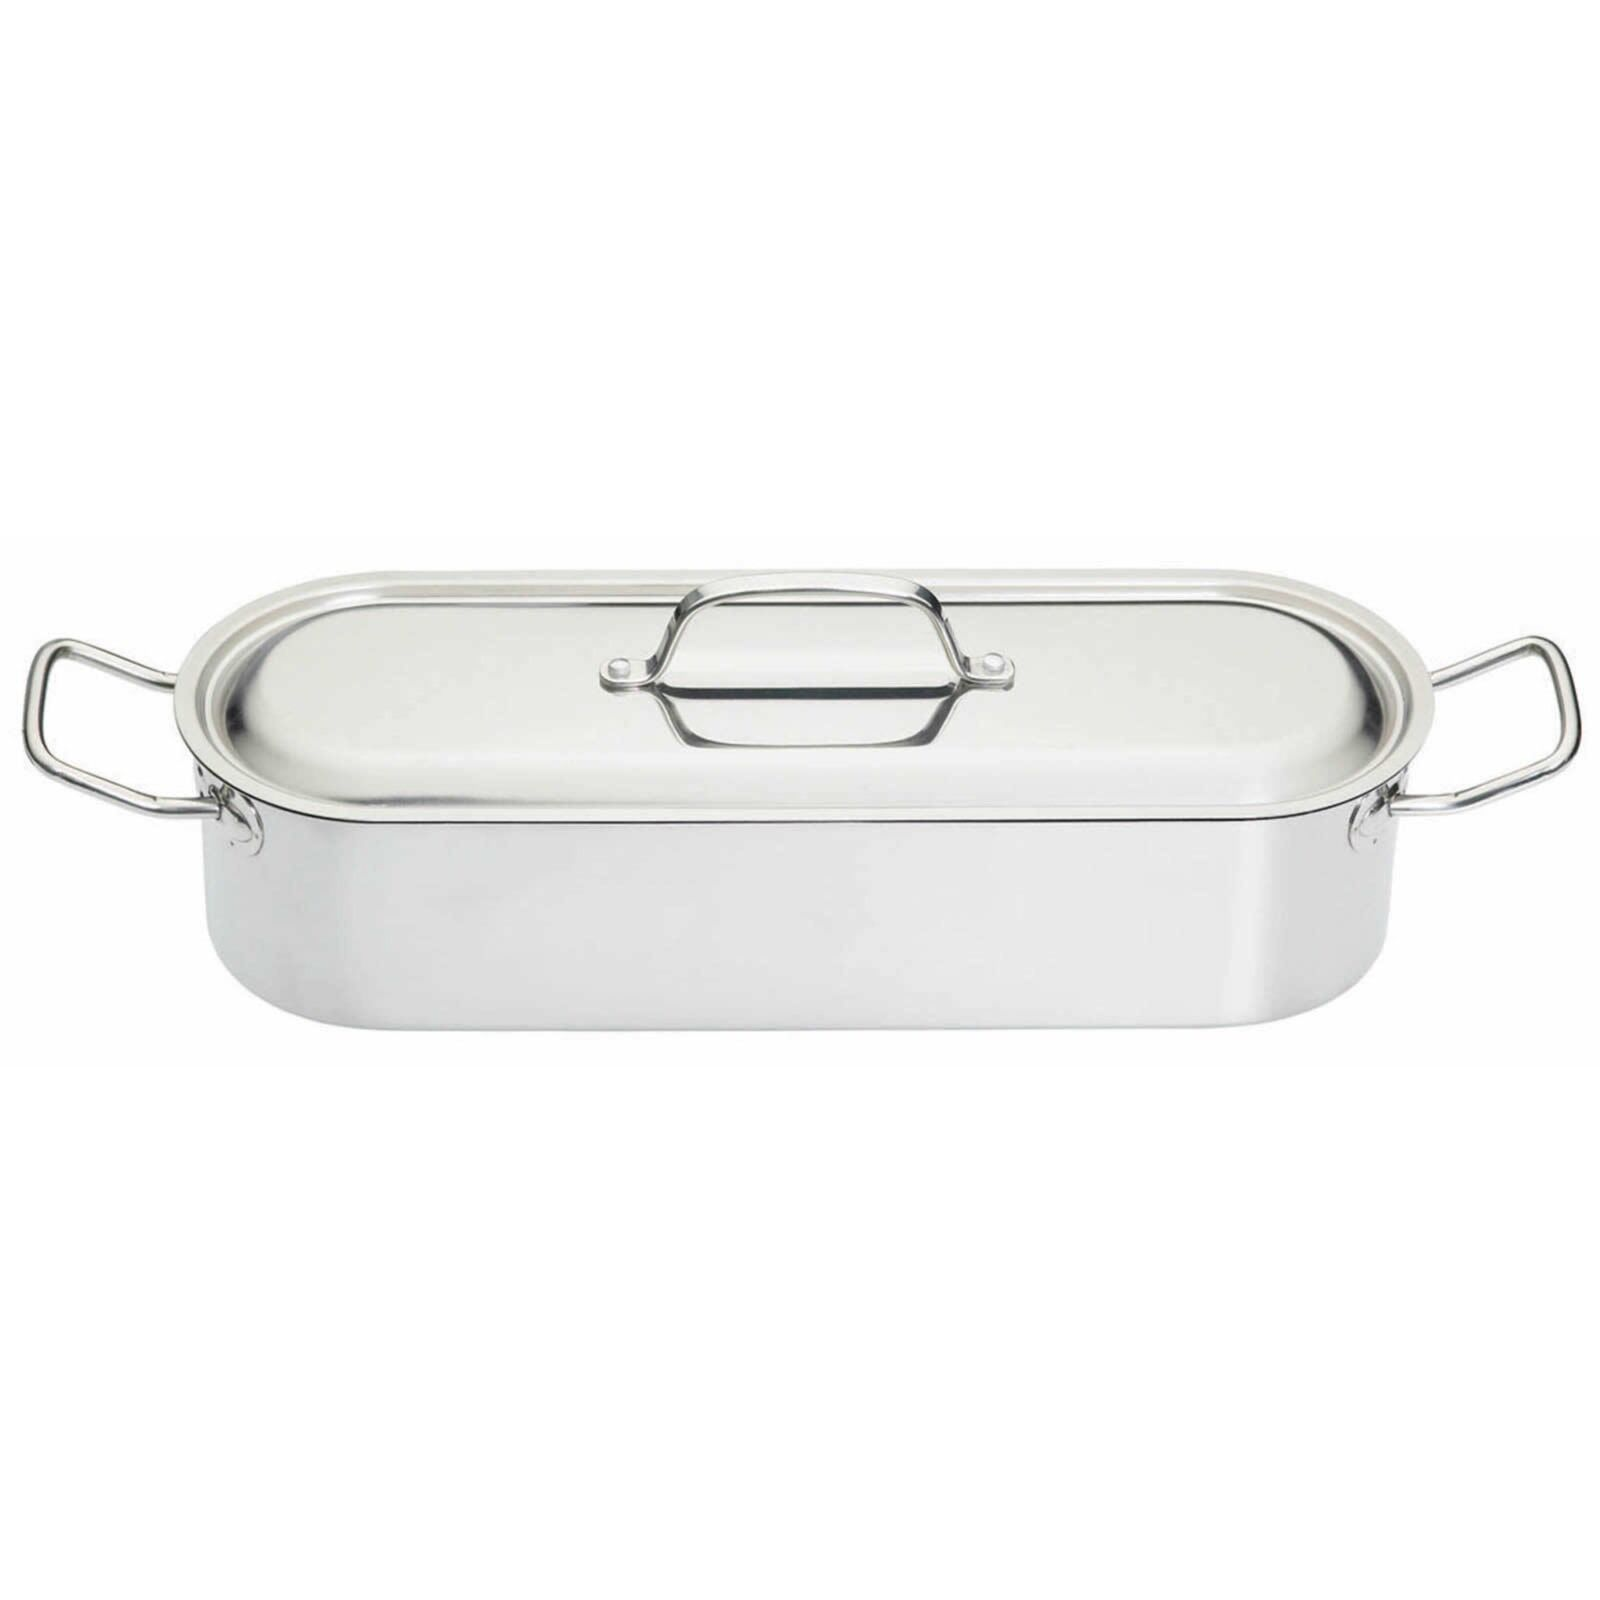 KitchenCraft Stainless Steel Large 60cm fish poacher